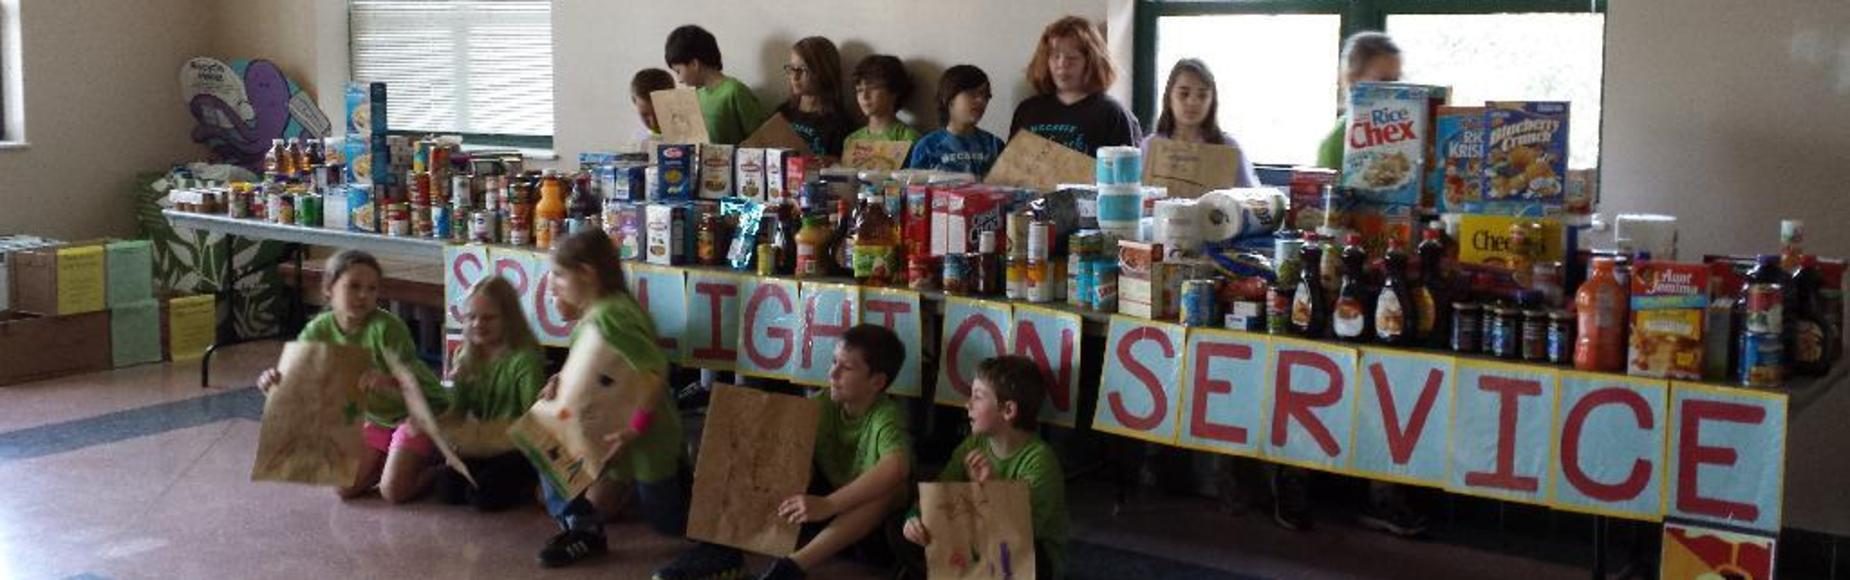 Student Spotlight on Service Project Picture